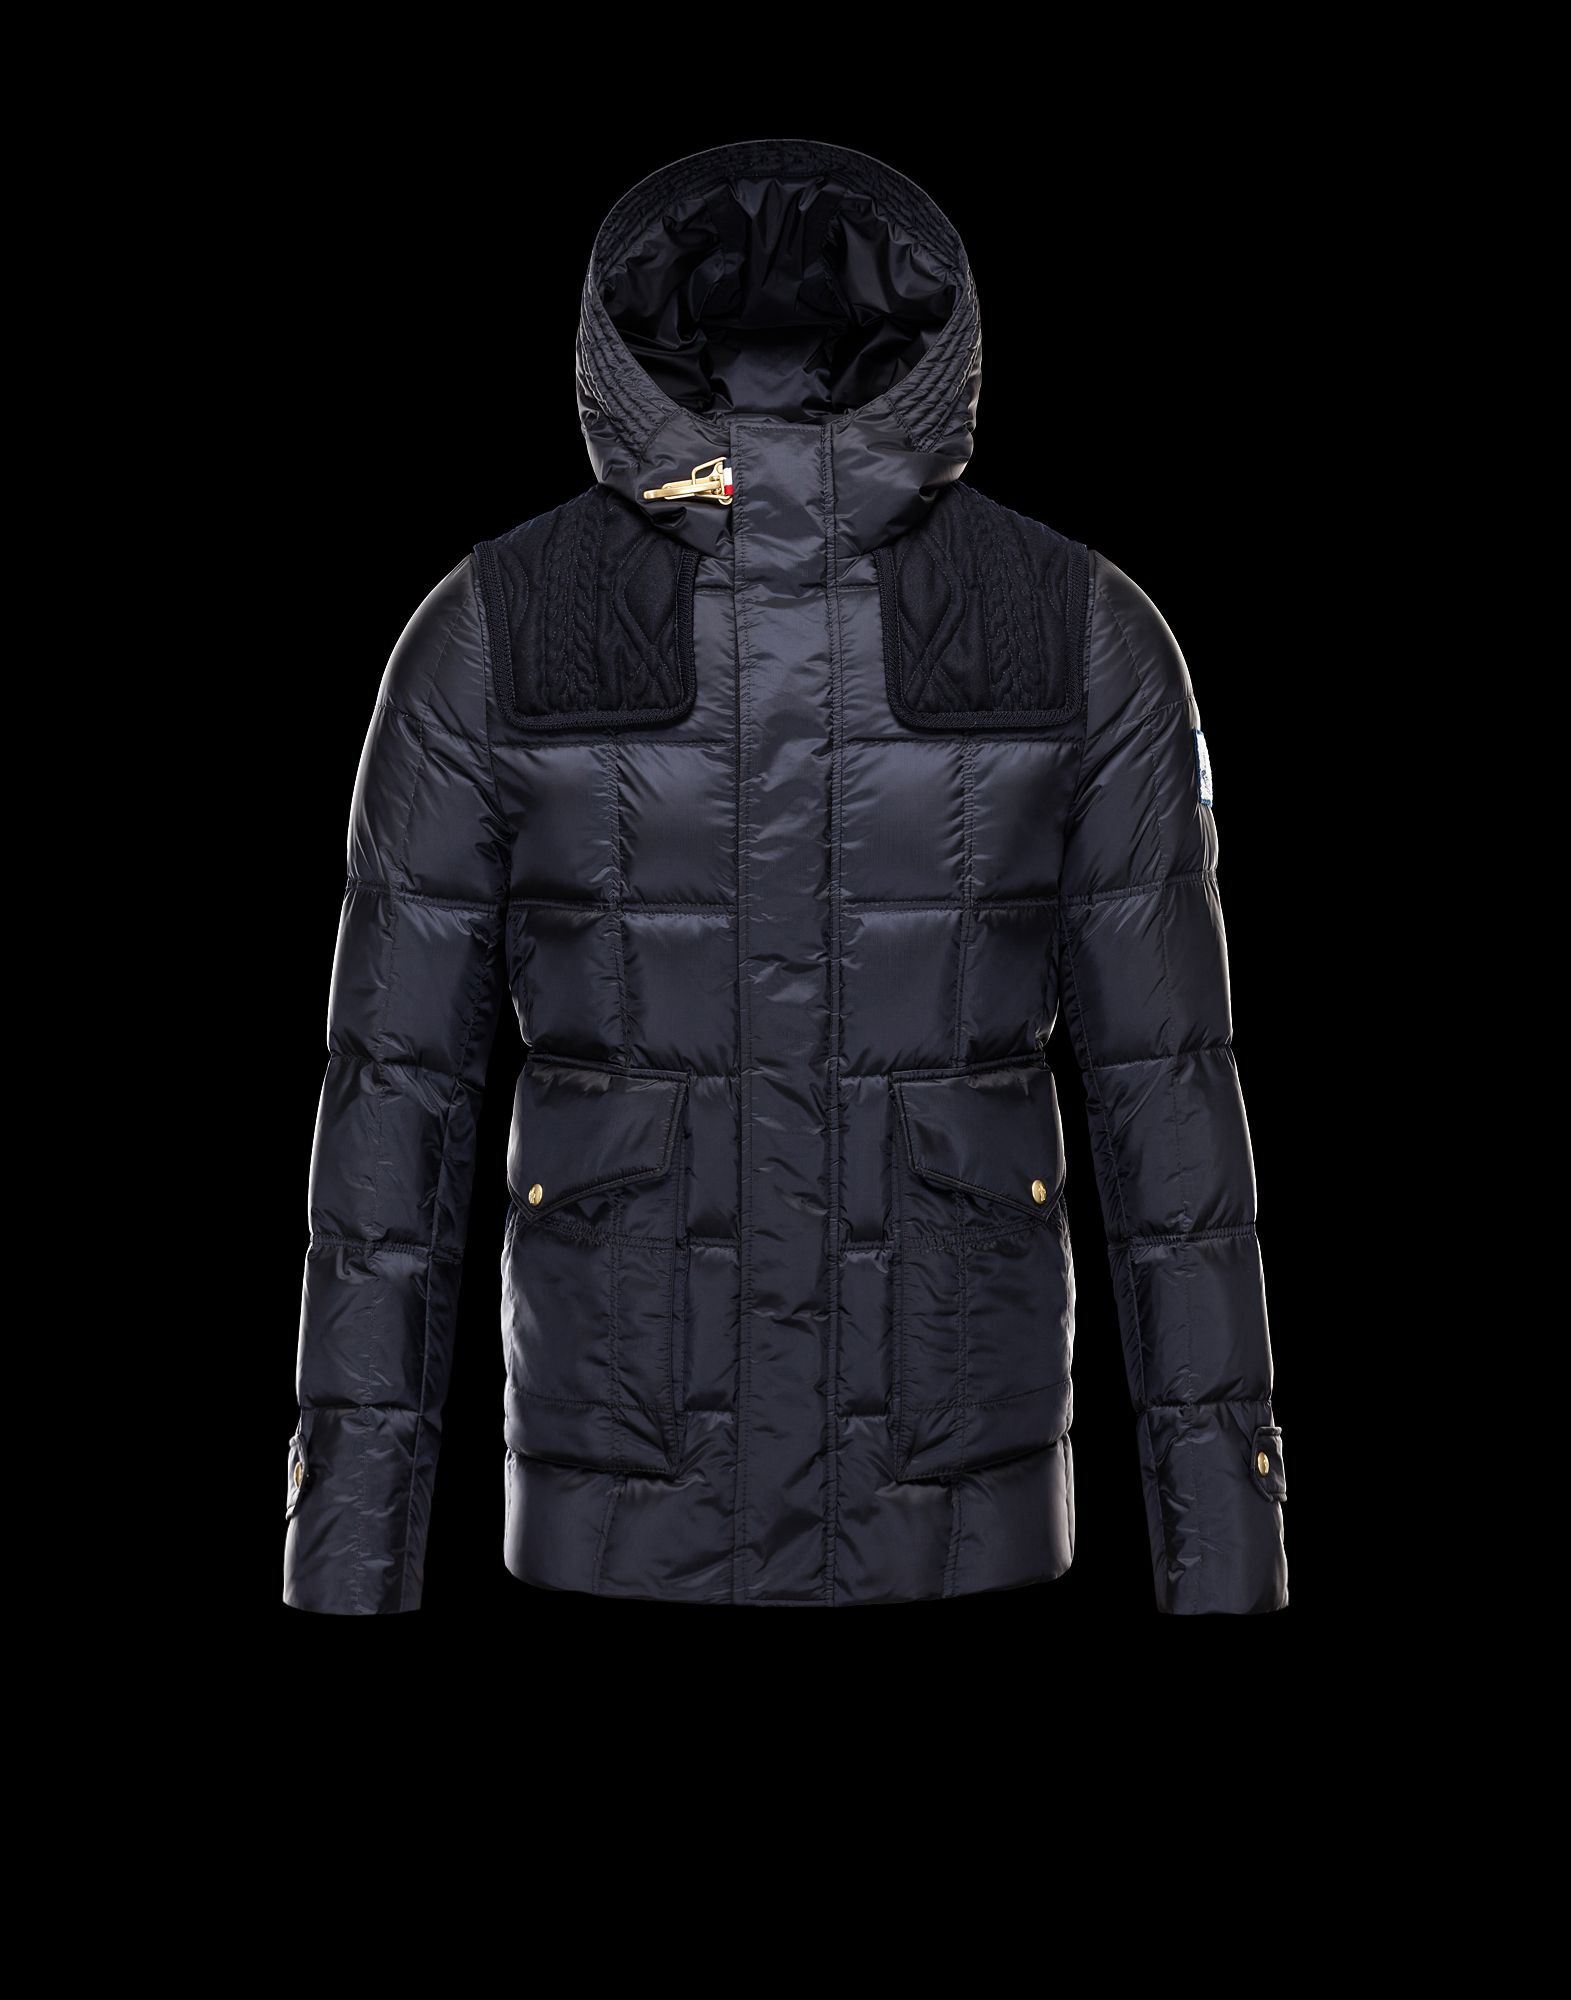 Moncler Men's Jacket Blue